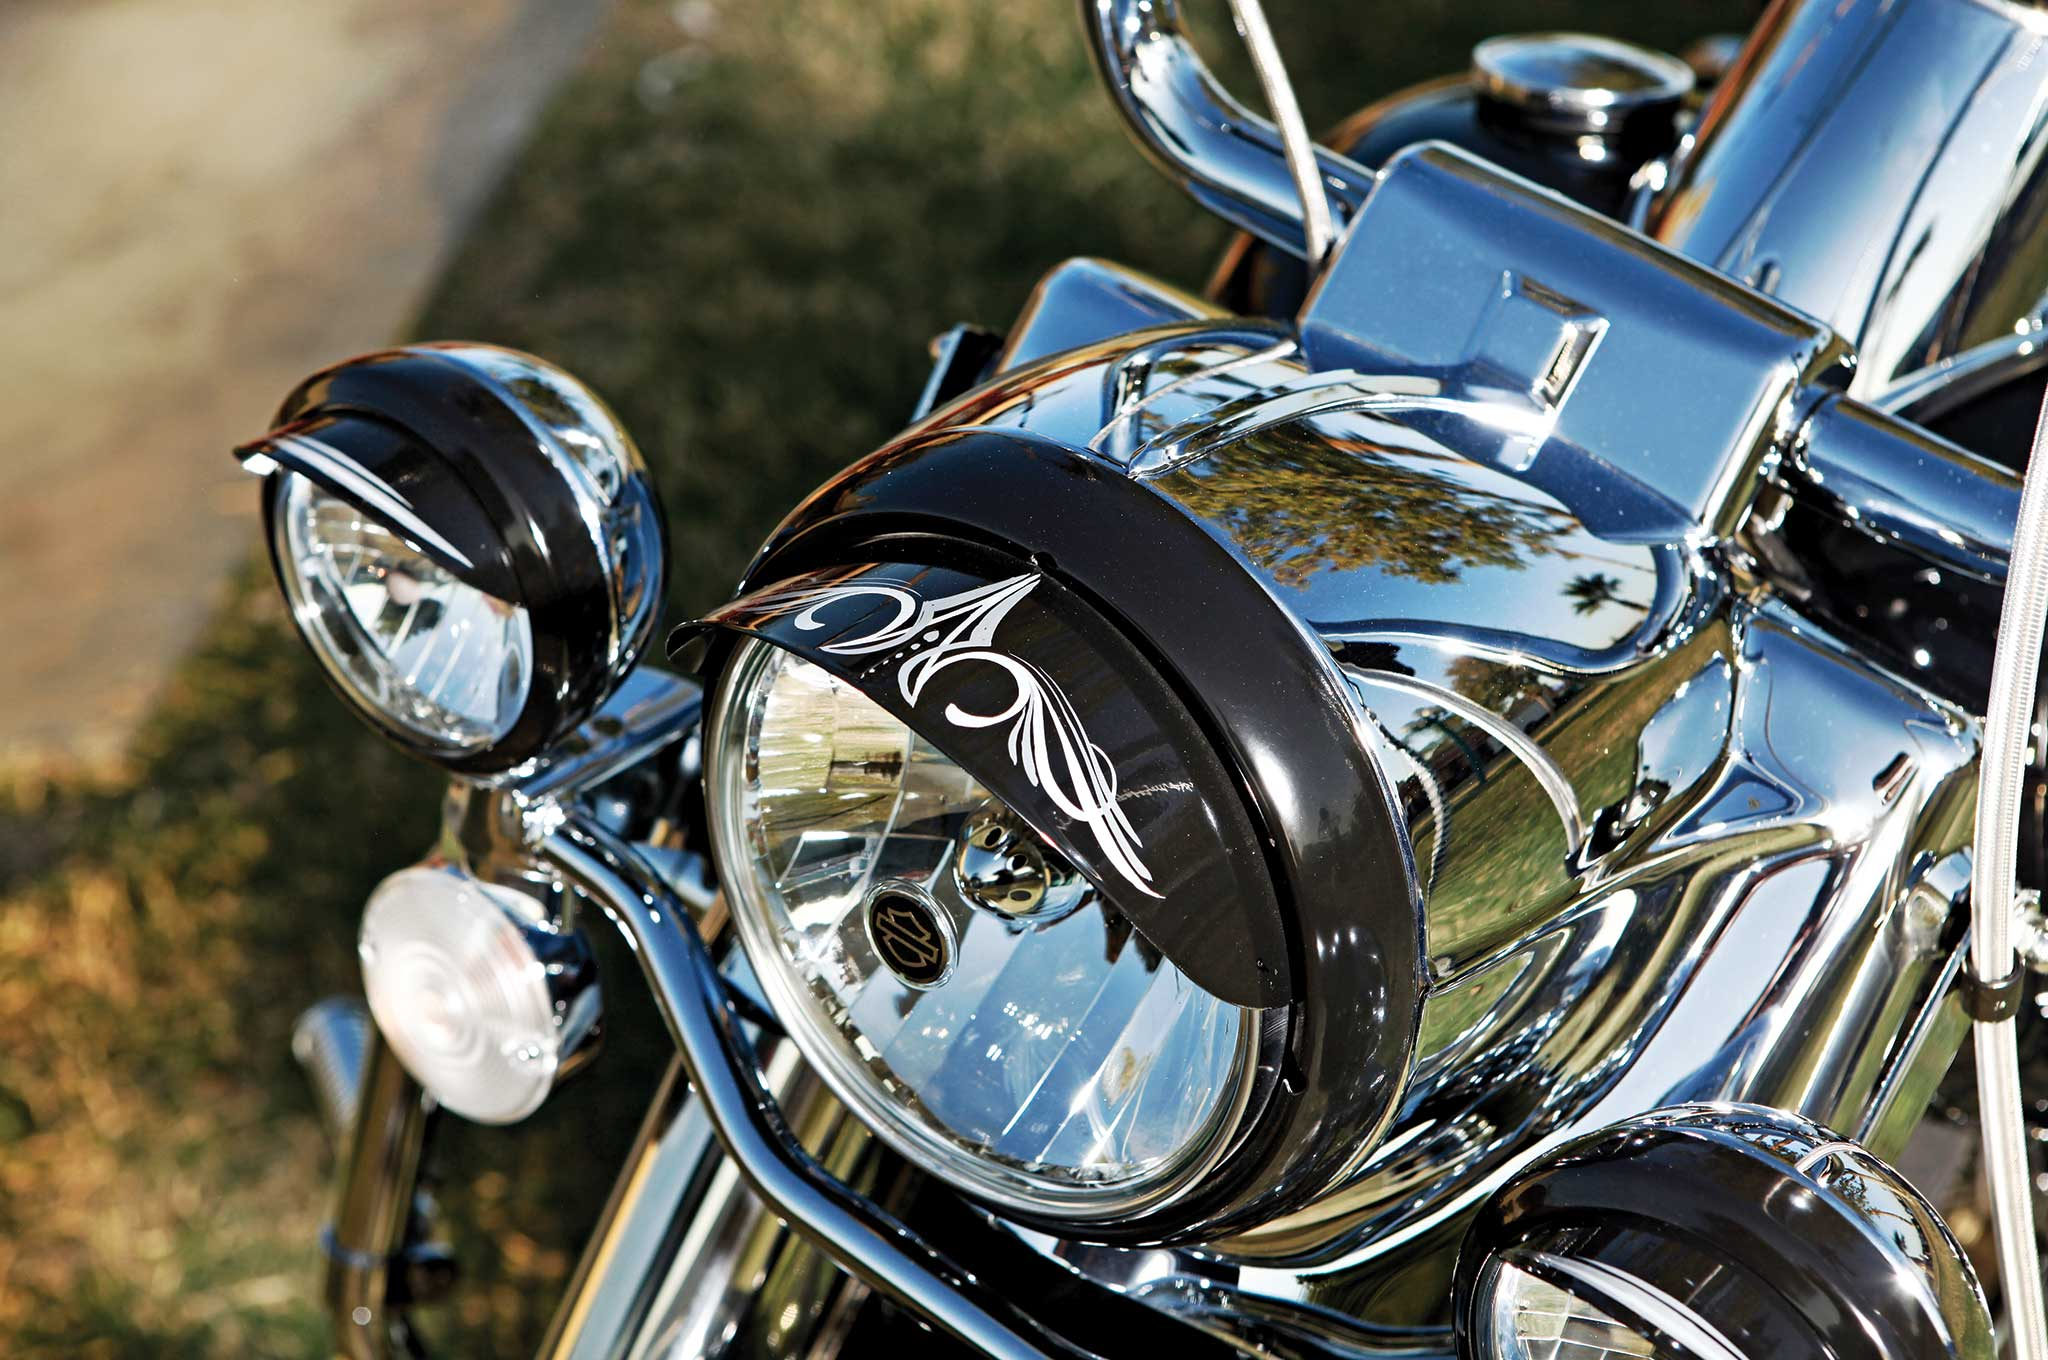 002 2012 harley davidson road king headlight